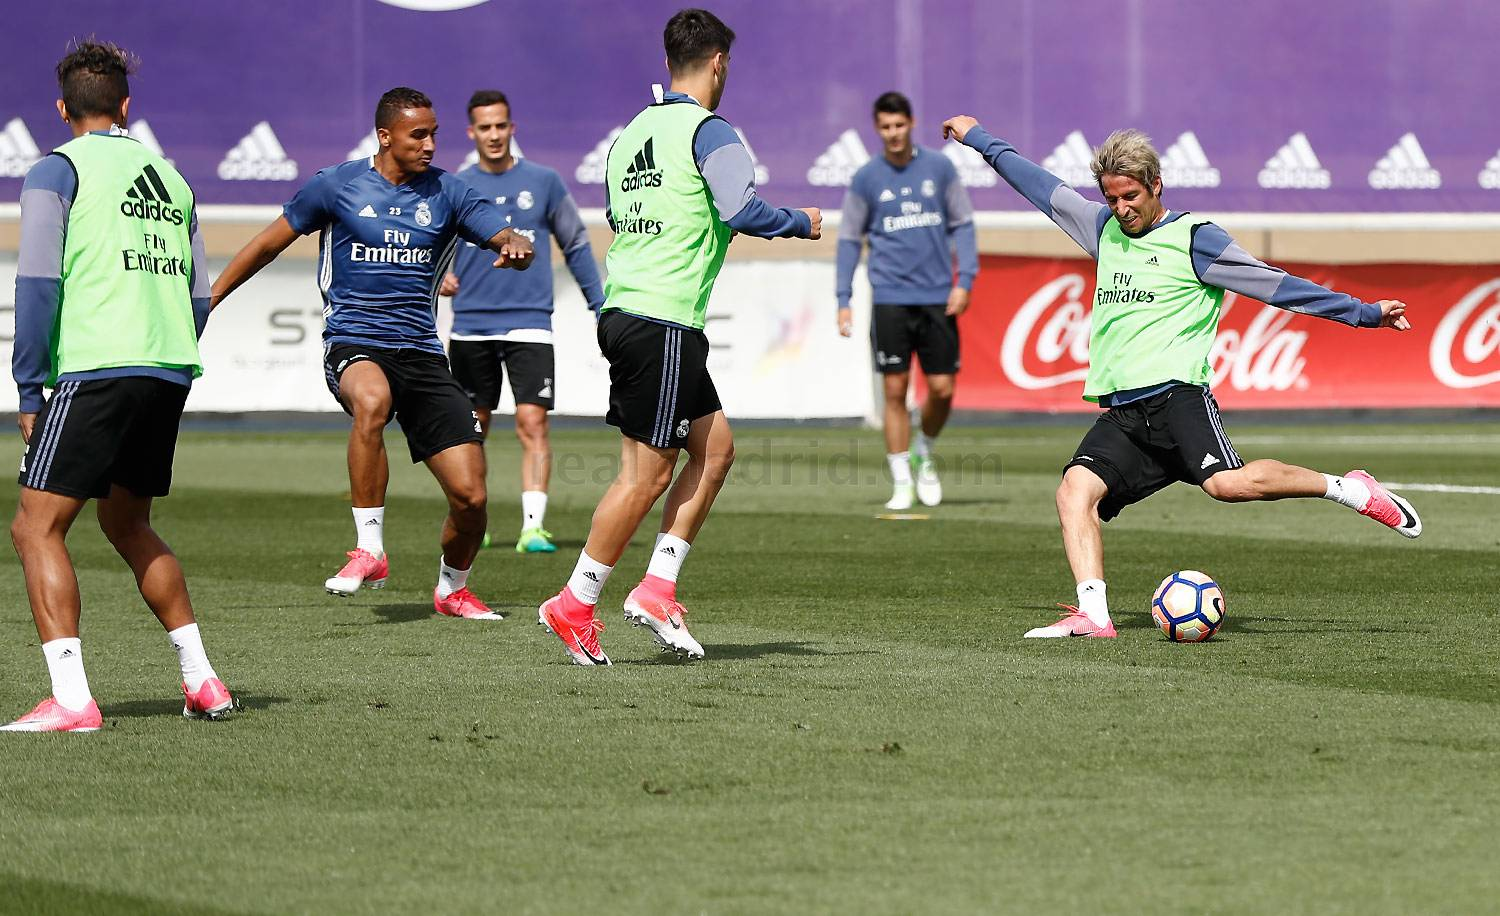 Real Madrid - Entrenamiento del Real Madrid - 20-04-2017